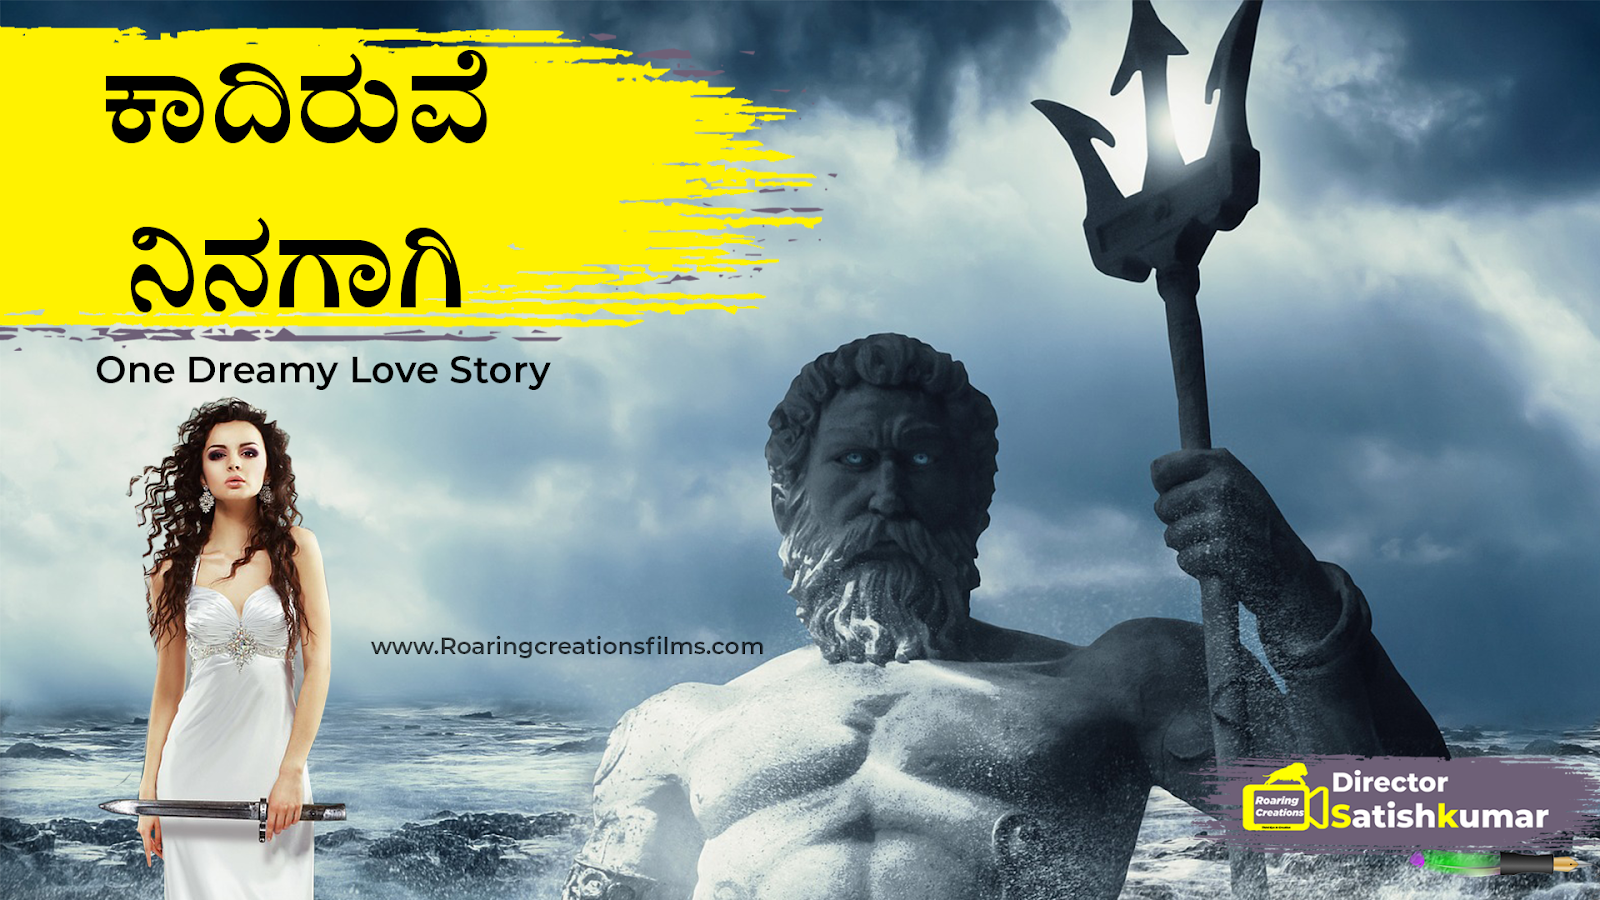 ಕಾದಿರುವೆ ನಿನಗಾಗಿ - One Dreamy Love Story of a Lonely lad in Kannada